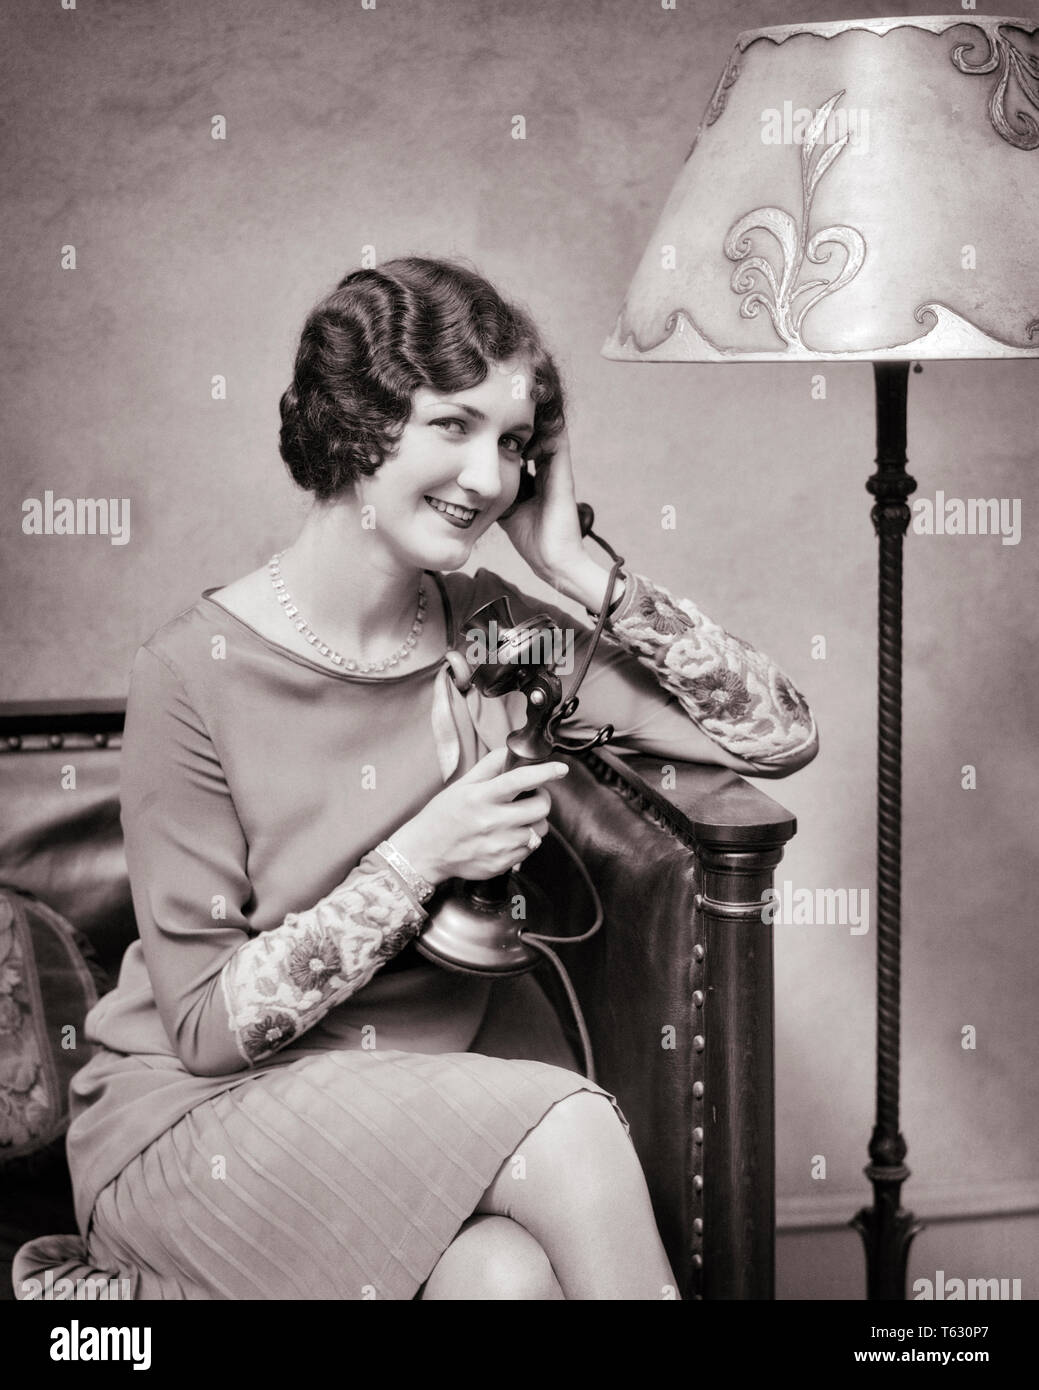 1920s SMILING WELL DRESSED WOMAN TALKING ON CANDLESTICK TELEPHONE - t2306 HAR001 HARS HALF-LENGTH LADIES PERSONS B&W CANDLESTICK BRUNETTE PRETTY HAPPINESS CHEERFUL STYLES HAIRSTYLE LAMPSHADE PHONES SMILES FINGER WAVES CONNECTION FLOOR LAMP TELEPHONES JOYFUL STYLISH FASHIONS YOUNG ADULT WOMAN BLACK AND WHITE CAUCASIAN ETHNICITY HAR001 OLD FASHIONED - Stock Image